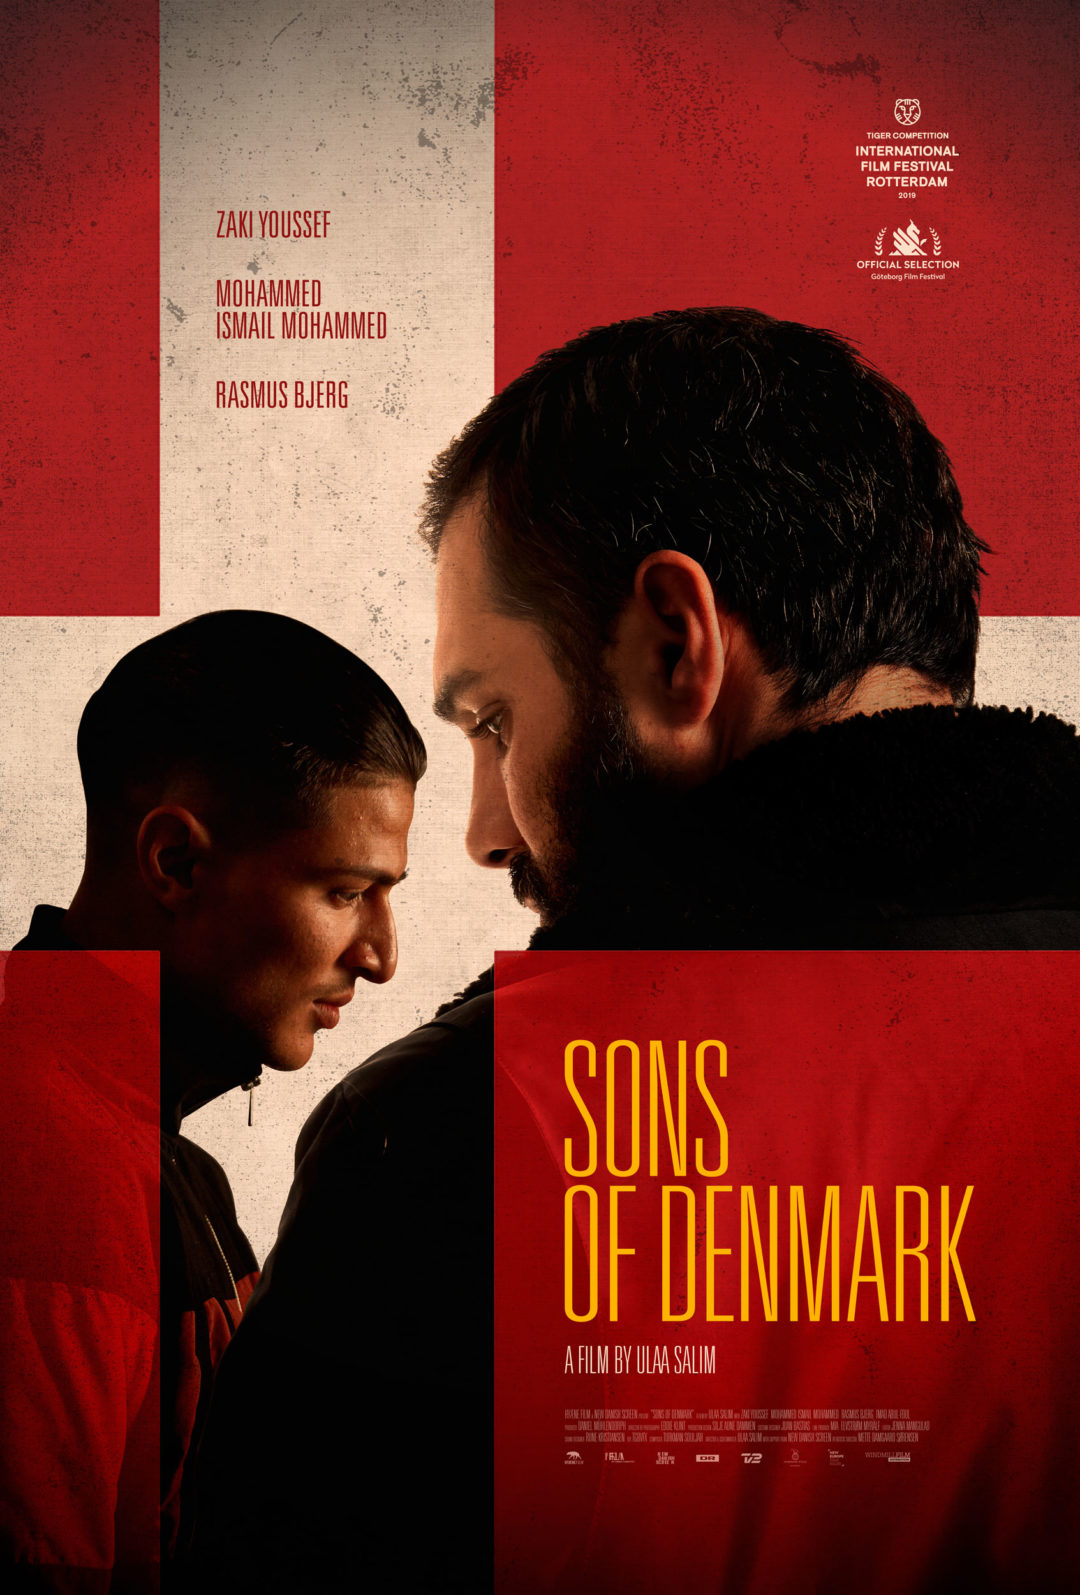 Sons-of-Denmark_ps_1_jpg_sd-high.jpg